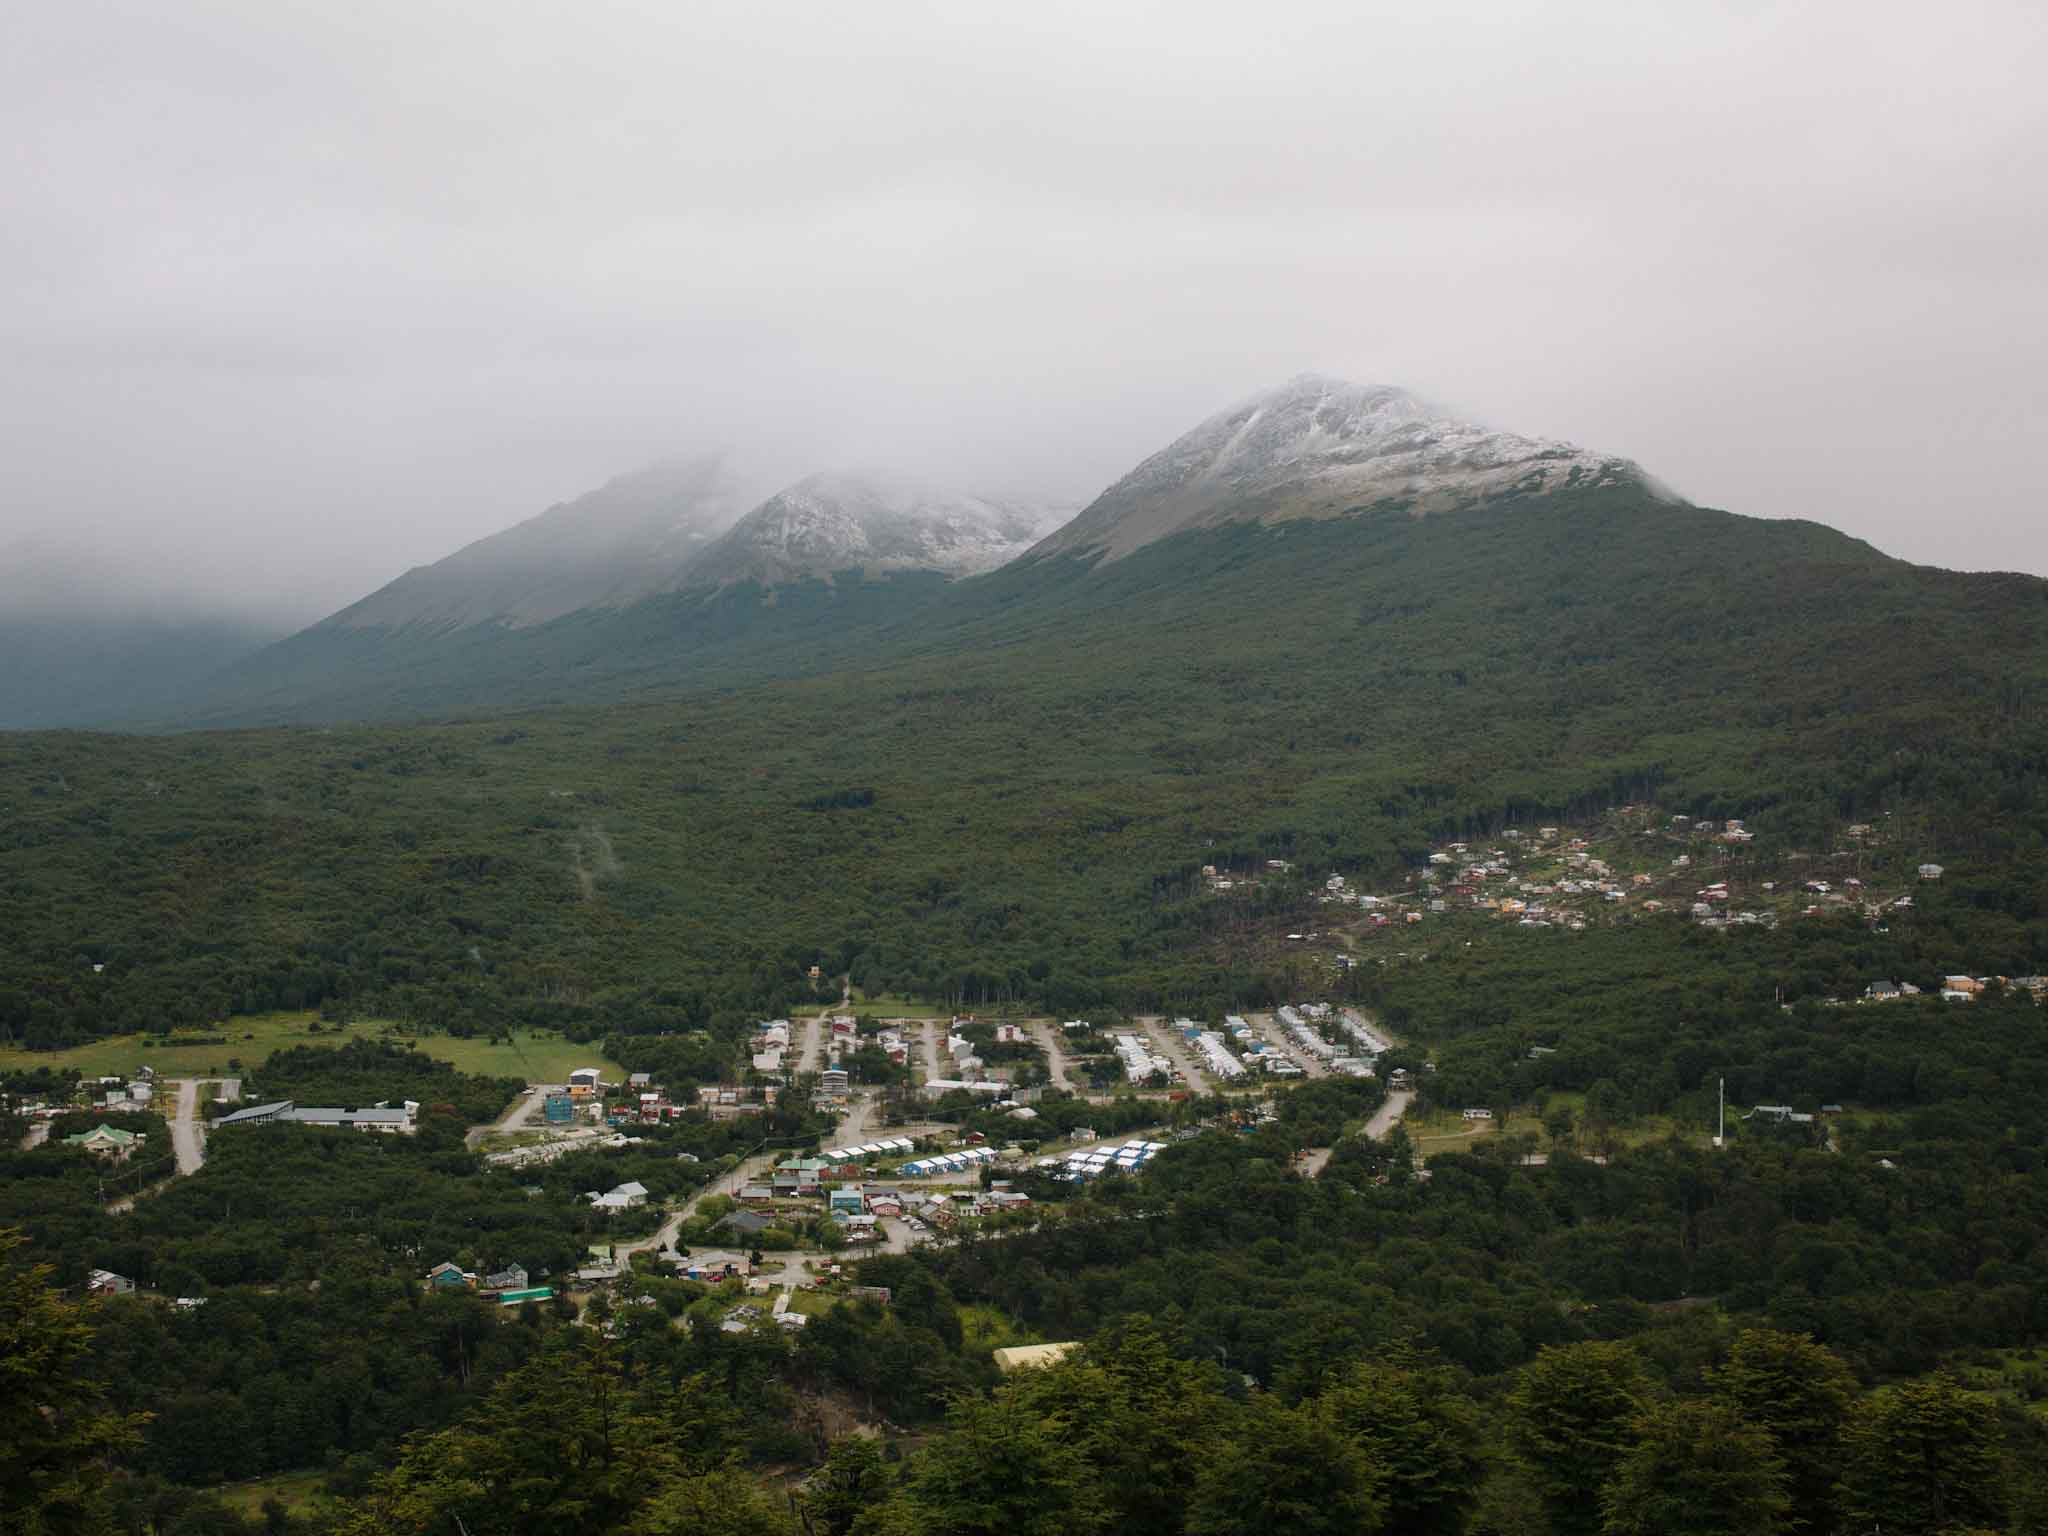 A view of the Andorra district of Ushuaia, pictured in the foreground. Andorra is another occupied district neighboring Dos Banderas, which can be seen on the wooded slope in the background.